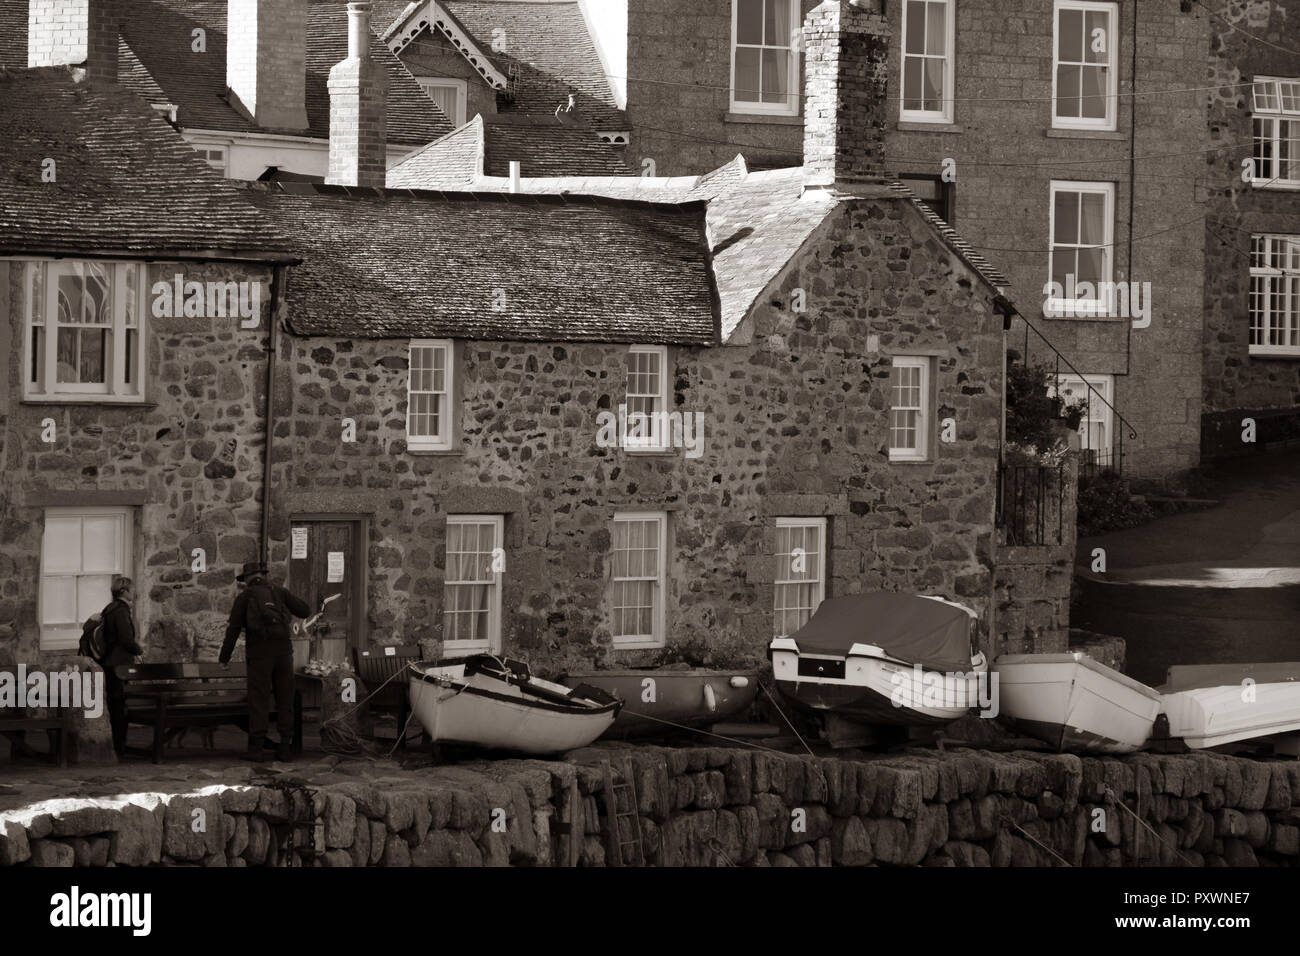 Sepia toned close up of period fishing cottages, people and boats pulled out of the water on the quayside at Mousehole, Cornwall. - Stock Image